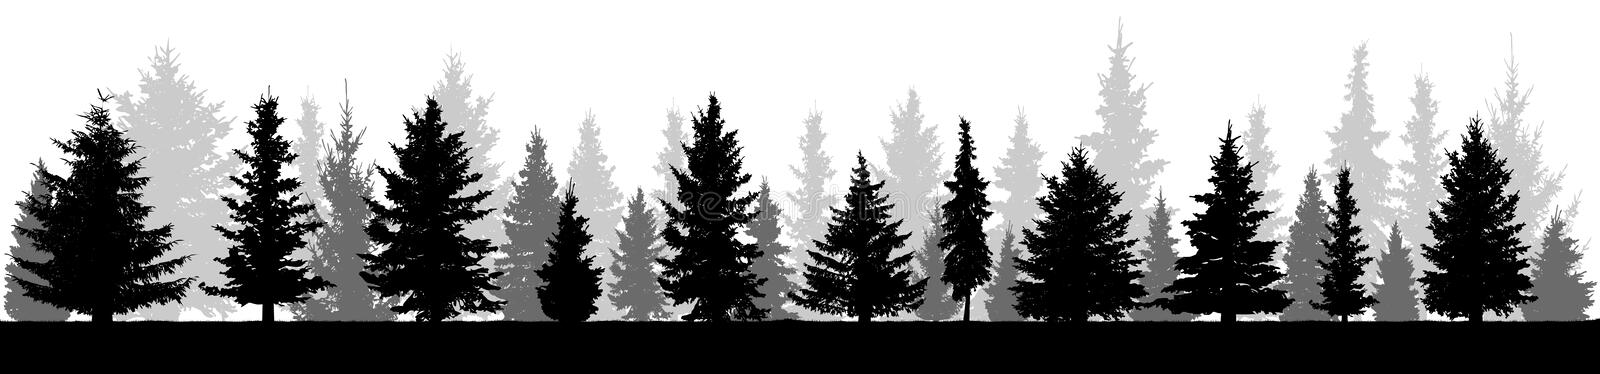 Forest fir trees silhouette. Coniferous spruce. royalty free illustration